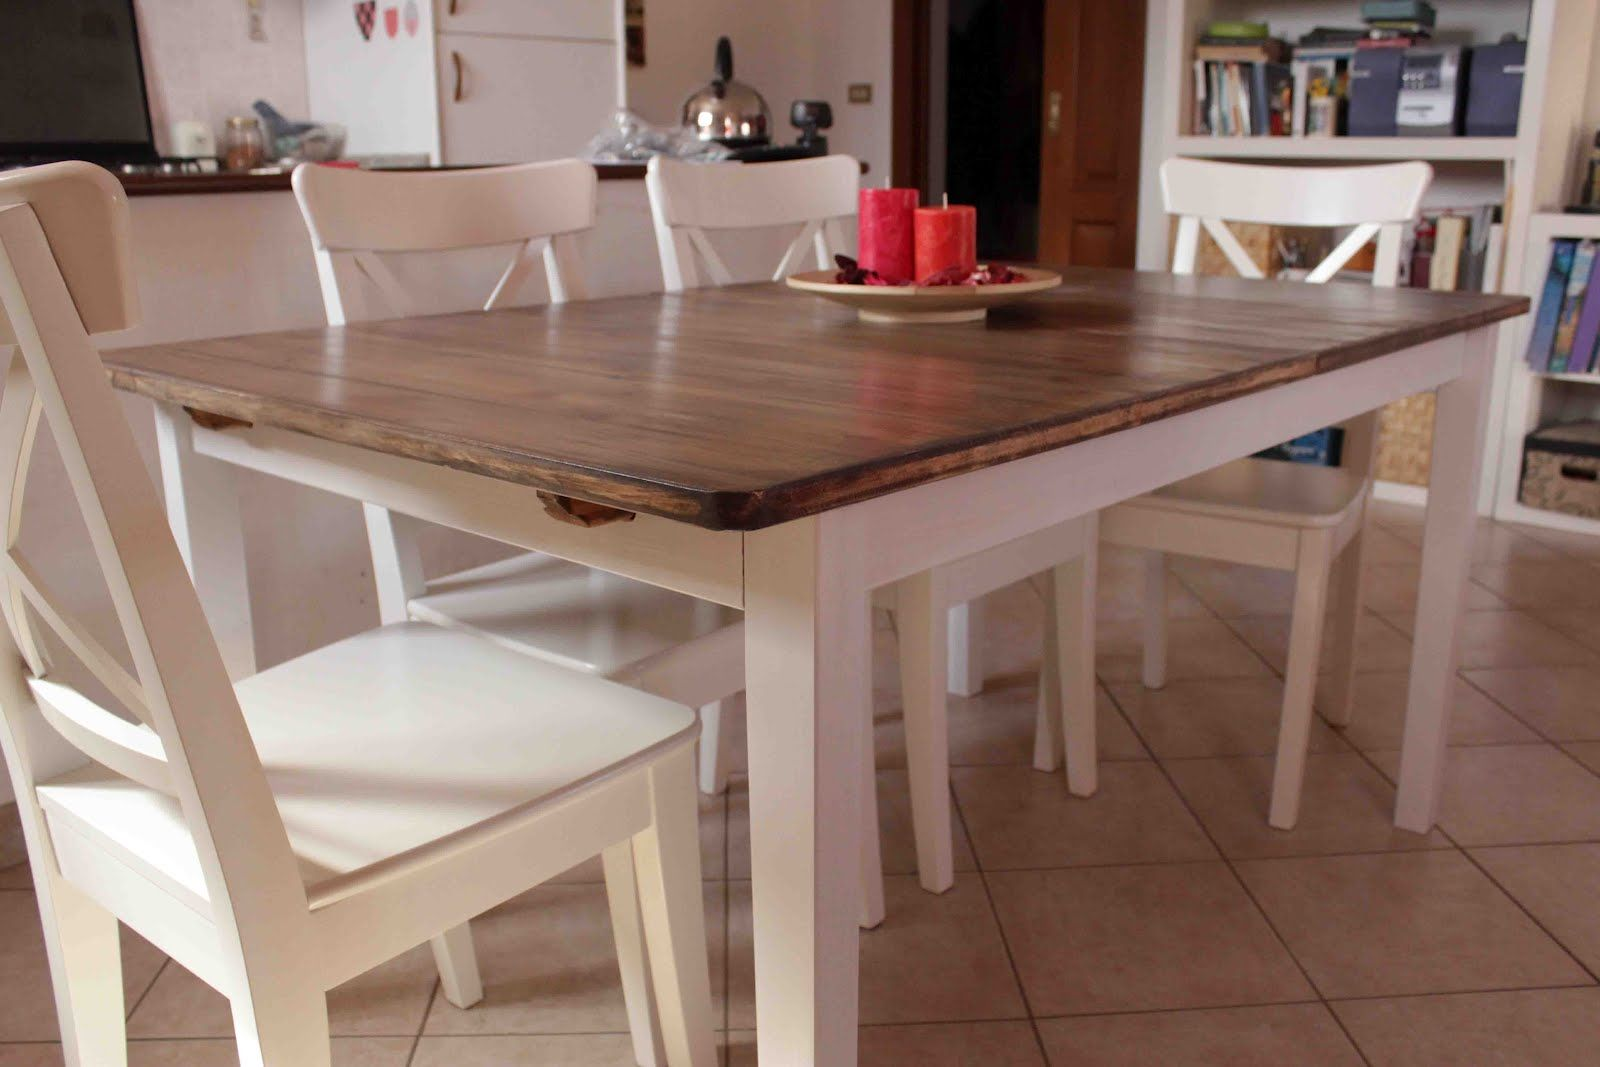 Make Your Own Country Kitchen Table With A Cheap IKEA Table This - How to make a country kitchen table